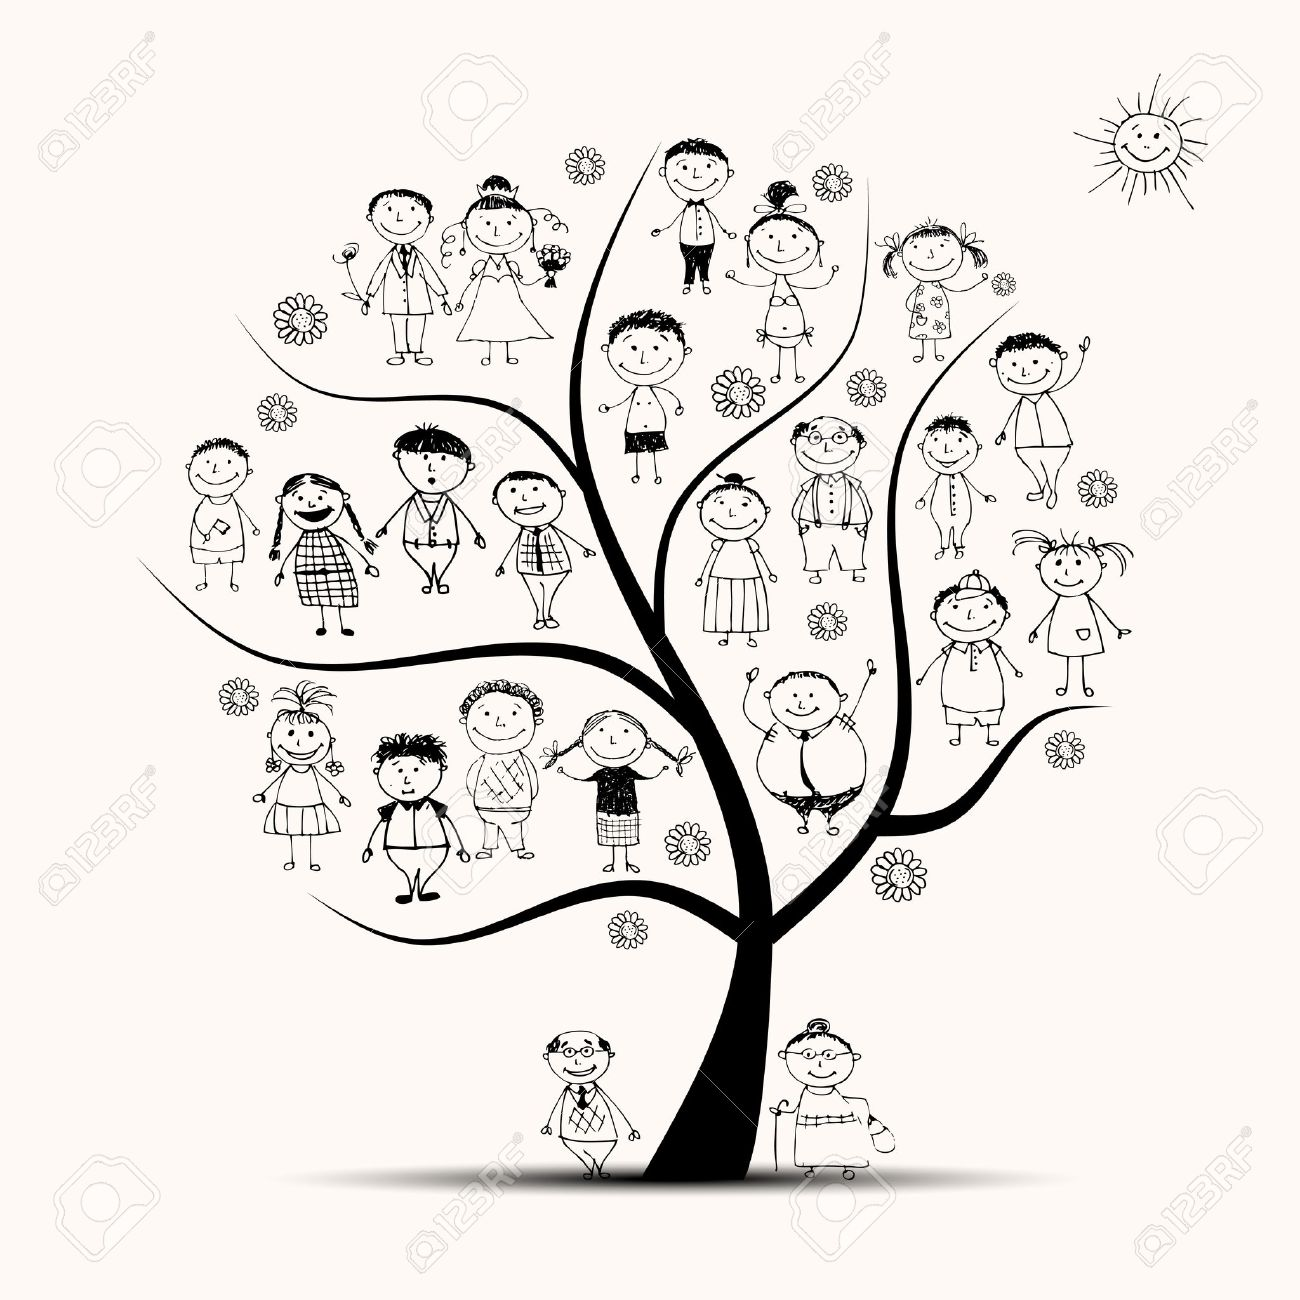 1300x1300 Family Tree, Relatives, People Sketch Royalty Free Cliparts